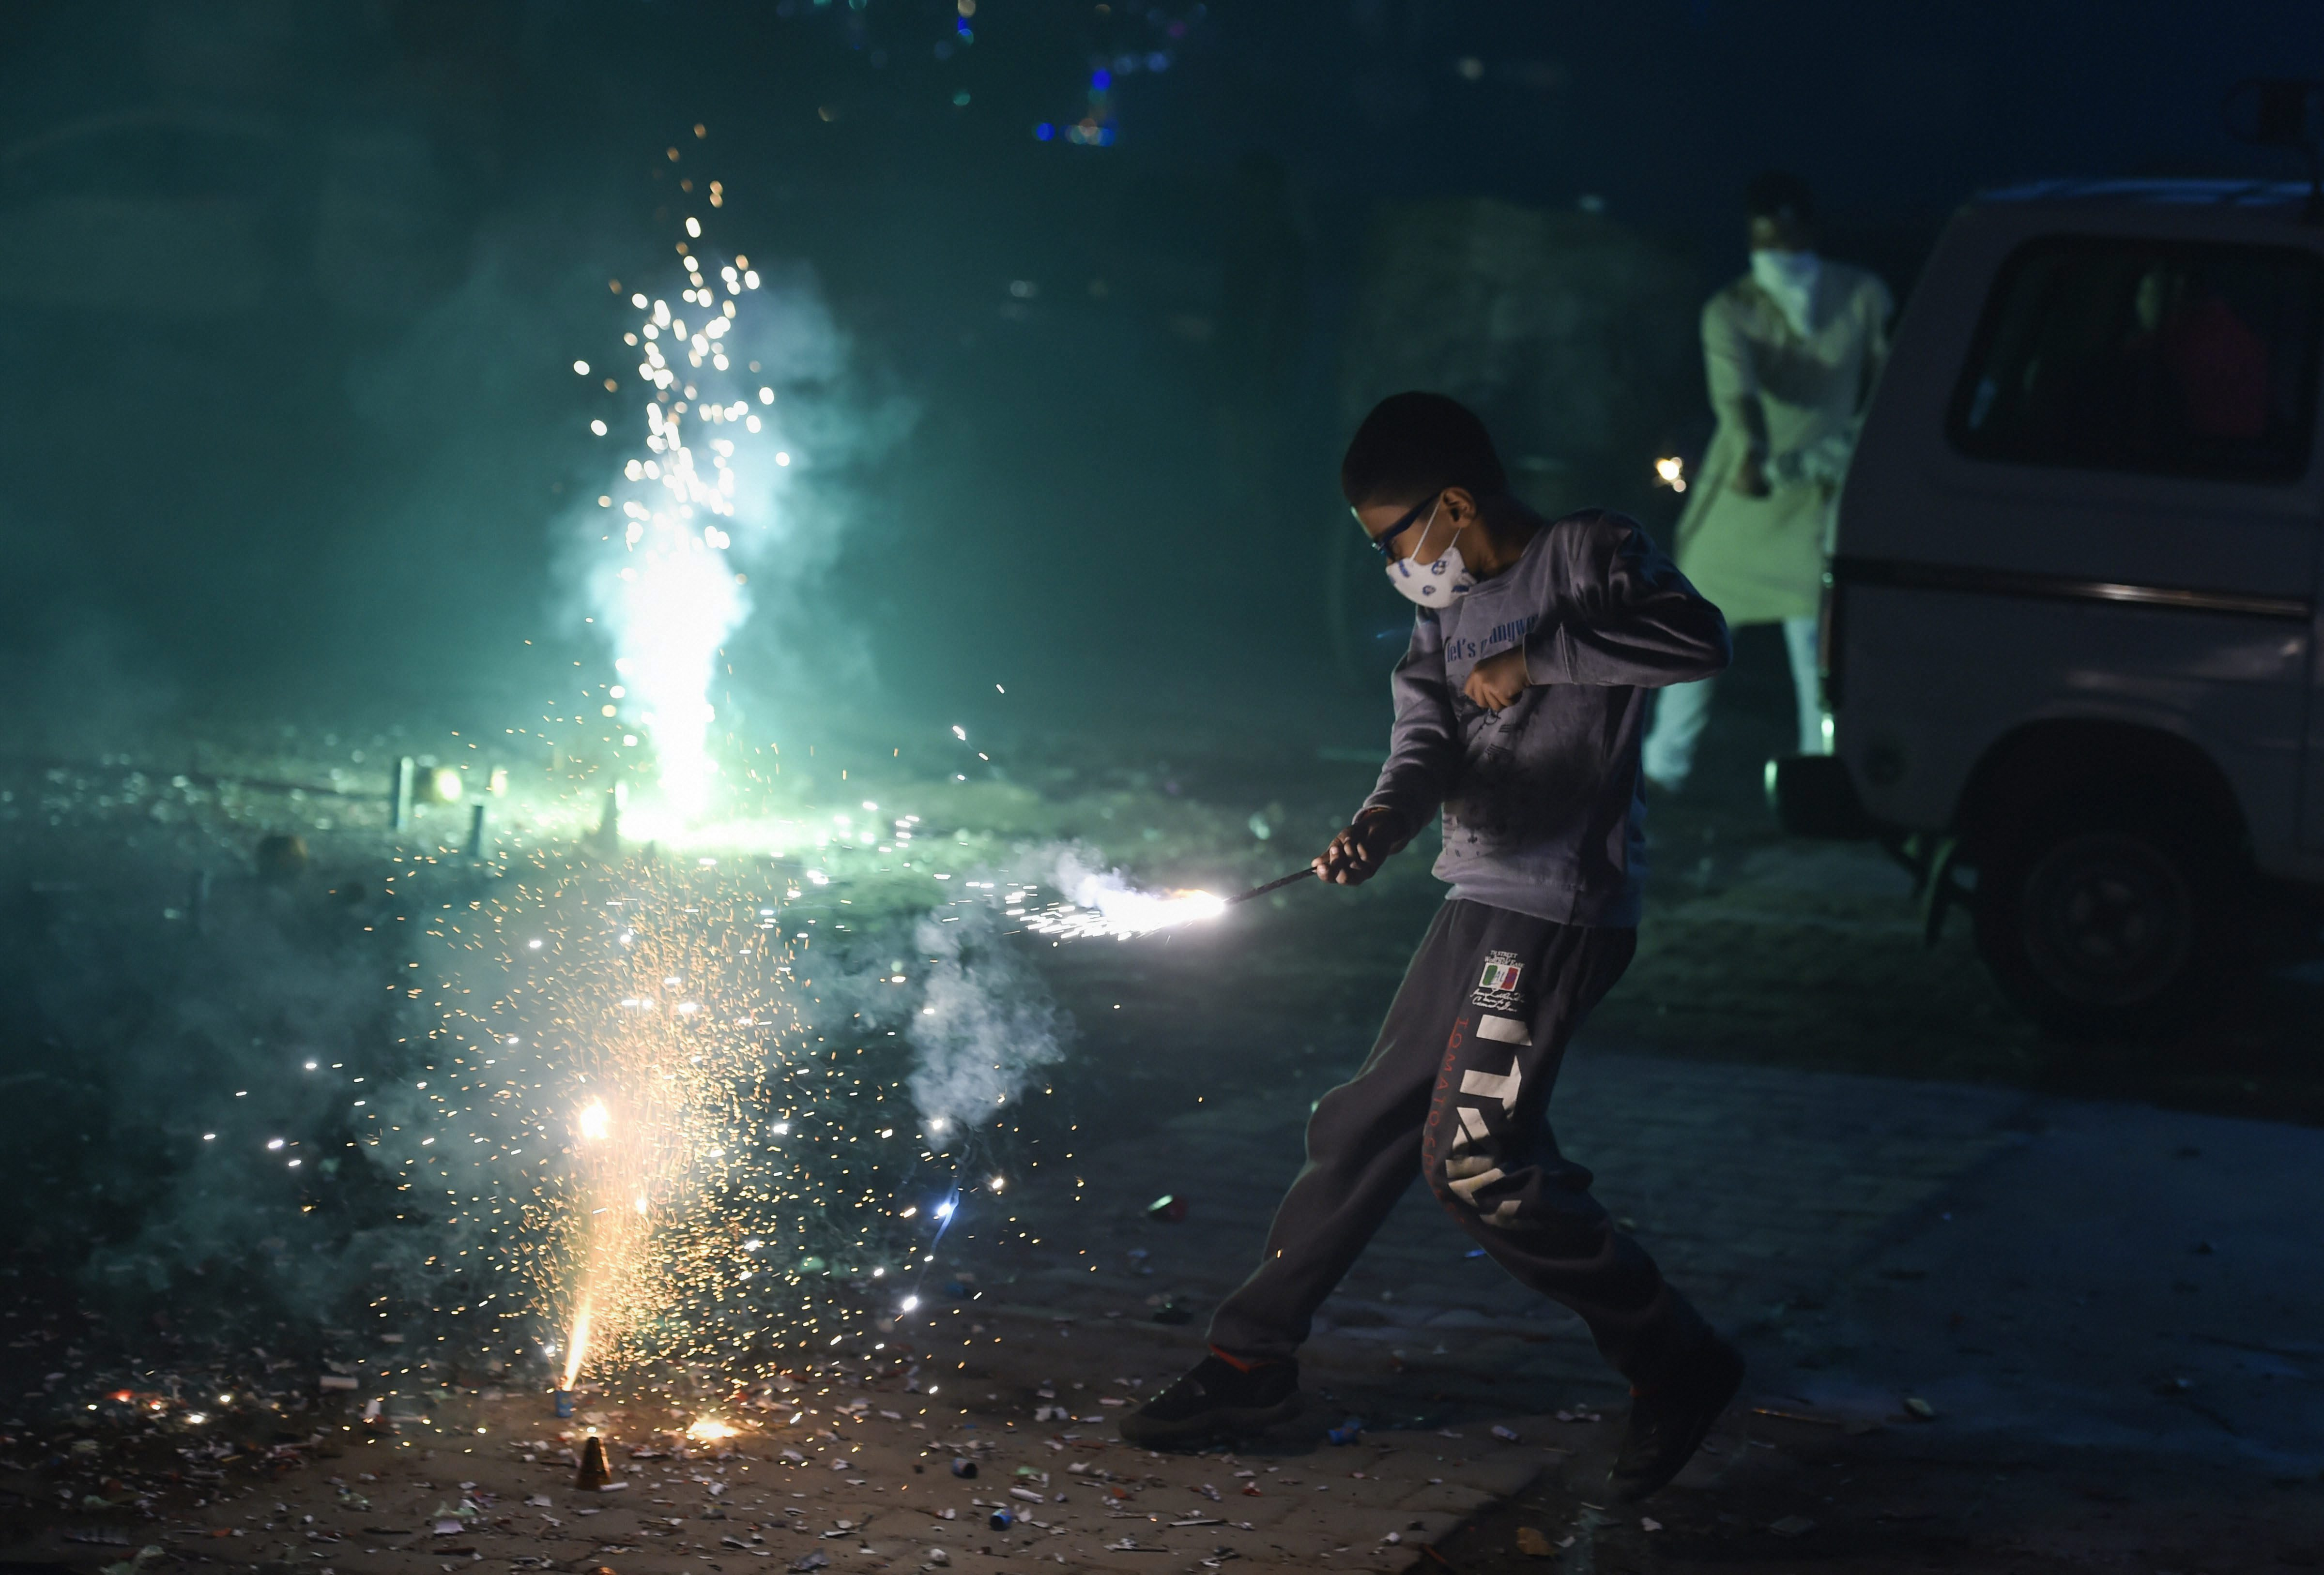 A child wearing an anti-pollution mask lights firecrackers in New Delhi to celebrate Diwali on Wednesday, November 7. Officials said the city recorded its worst air quality of the year on the following morning due to firecrackers.